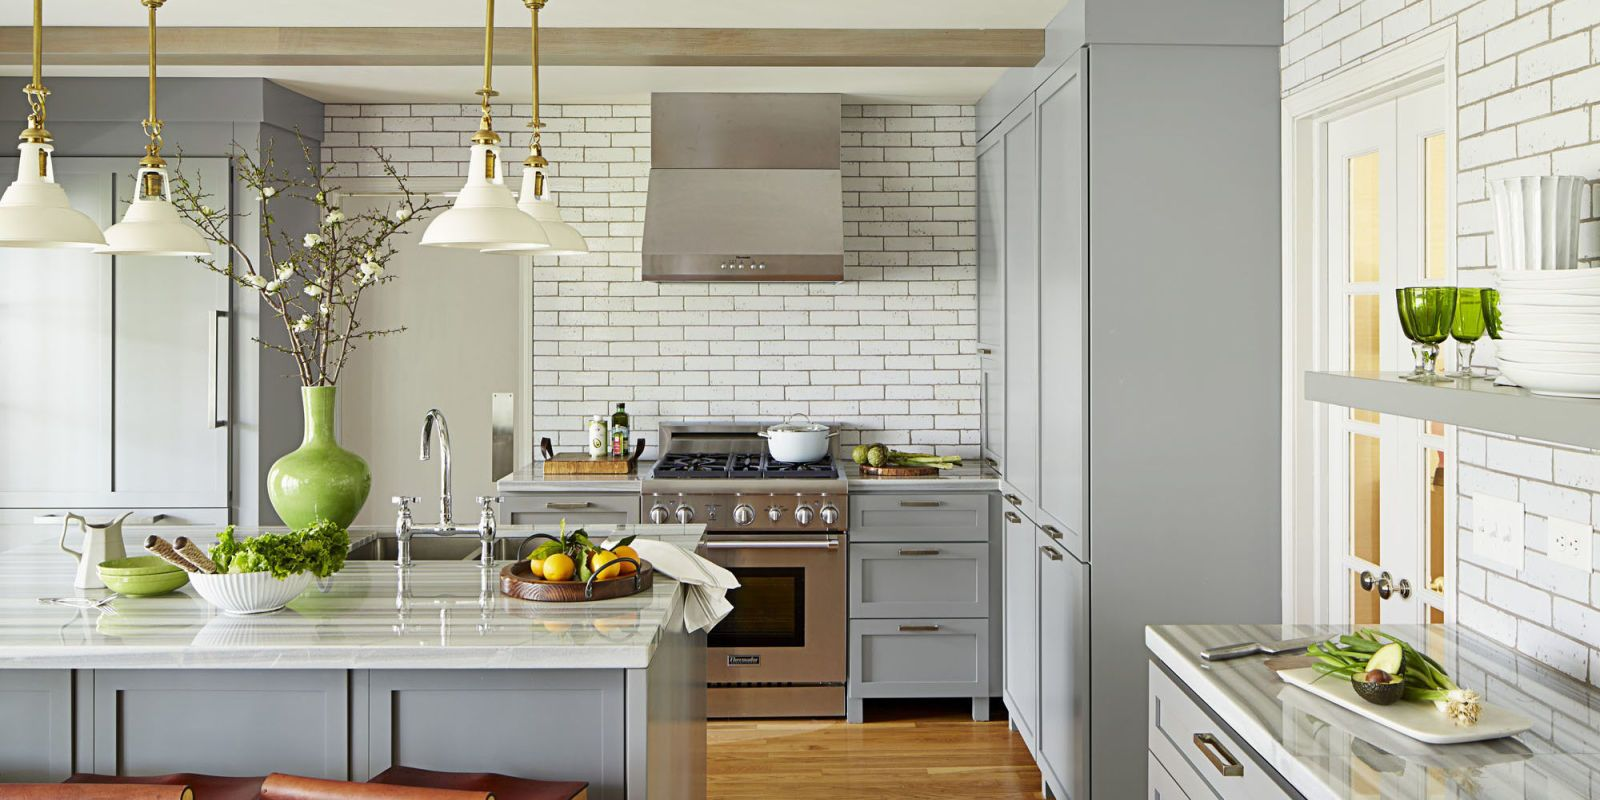 23 Kitchen Countertops You've Never Even Considered